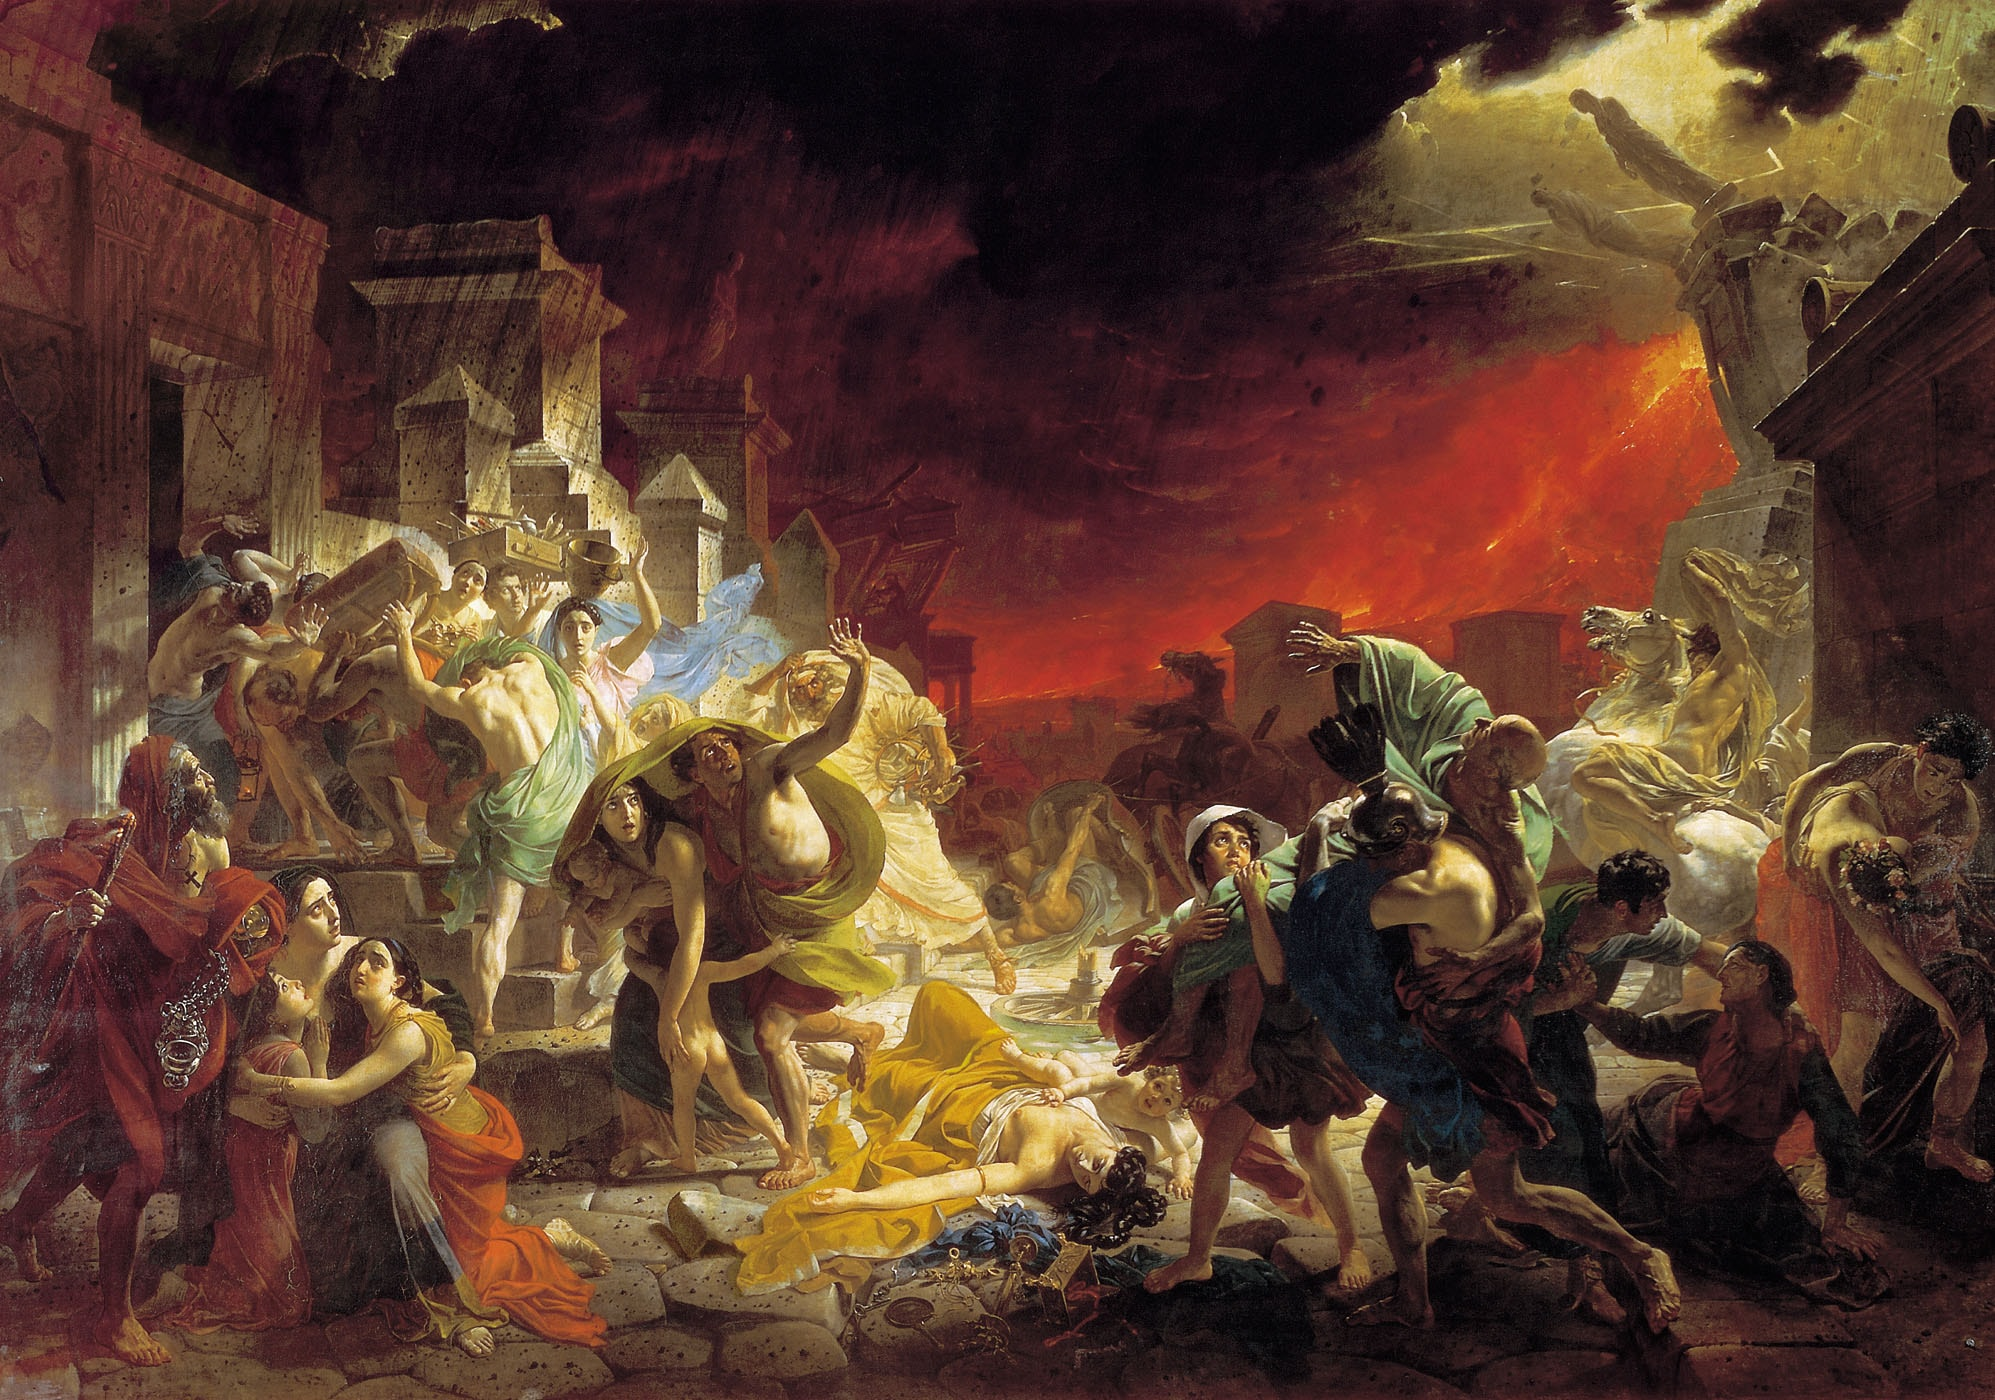 Karl_Briullov,_The_Last_Day_of_Pompeii_(1827–1833)